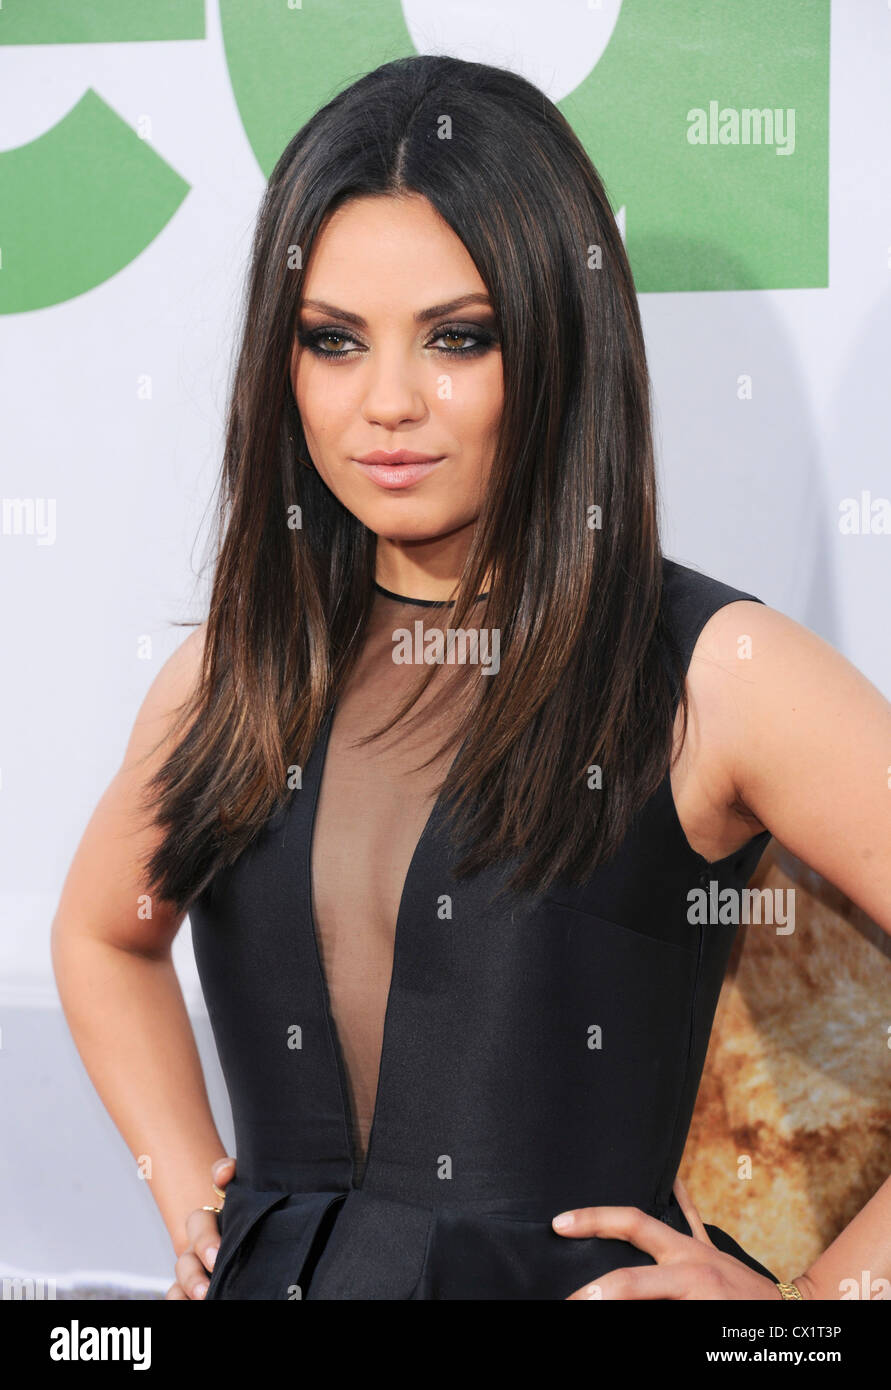 Los Angeles, California, USA. 21st June 2012. Mila Kunis © Sydney Alford / Alamy Live News Stock Photo